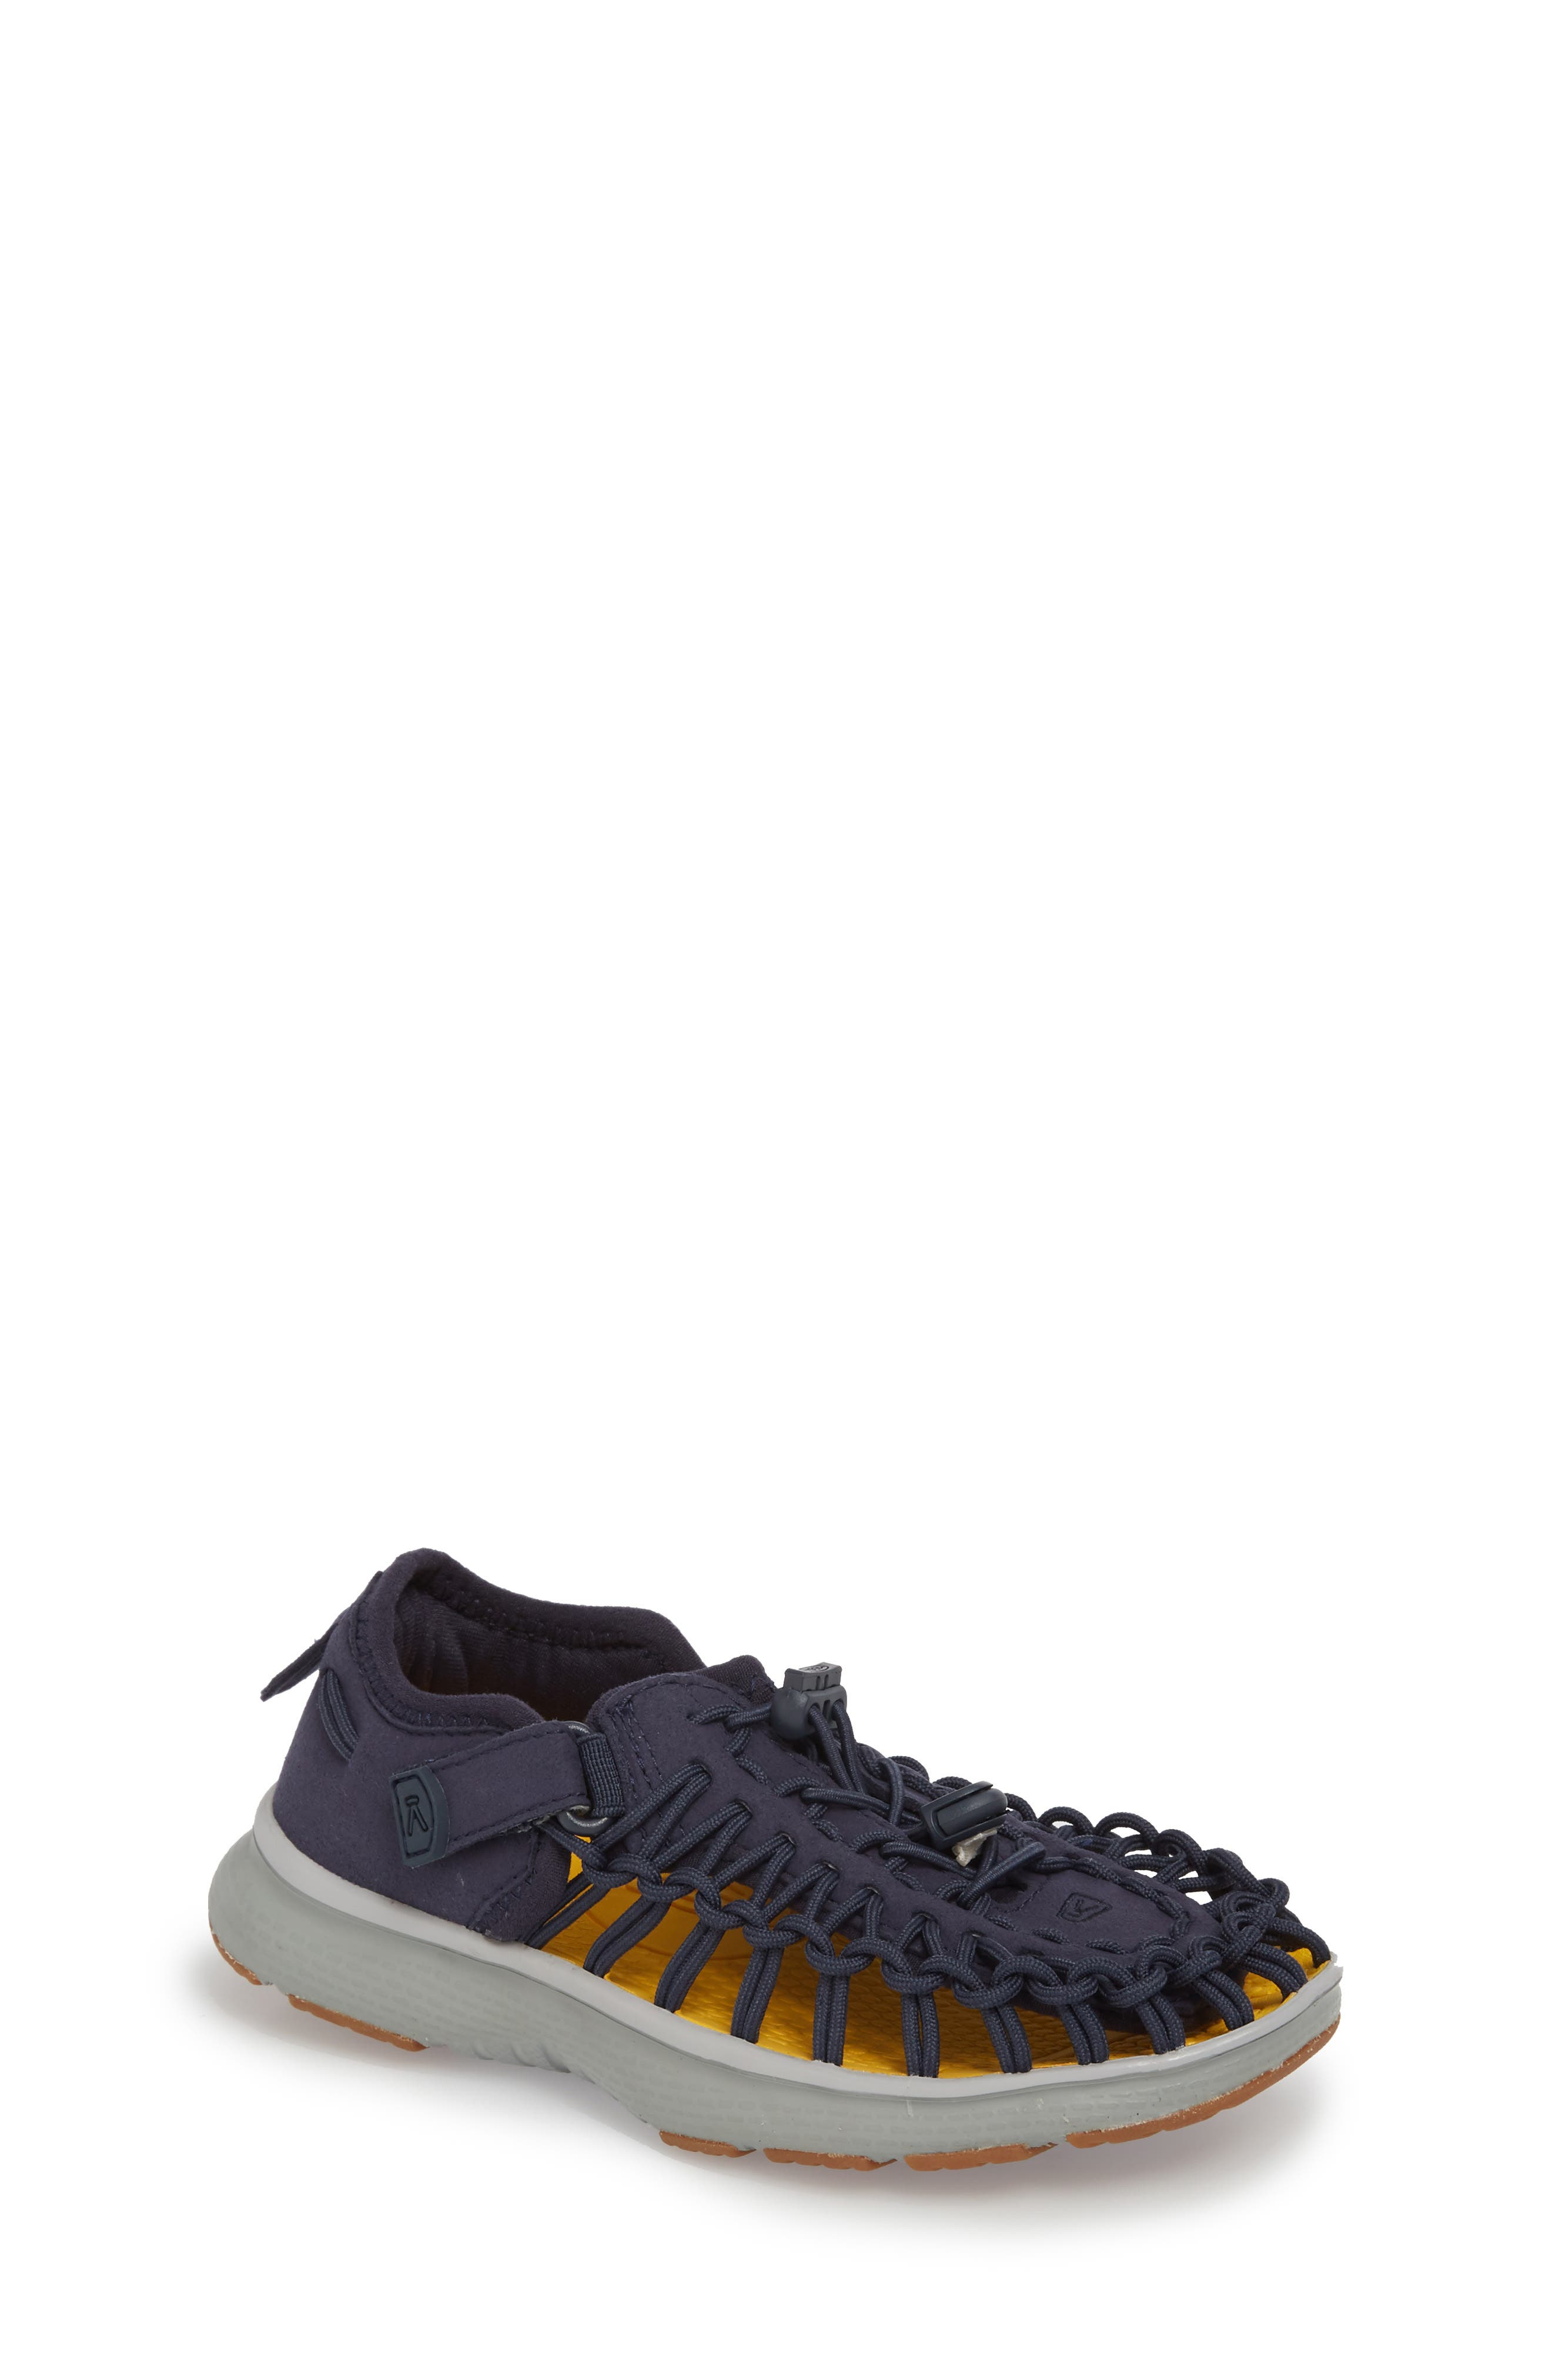 'Uneek' Water Sneaker,                             Main thumbnail 1, color,                             Dress Blues/ Neutral Gray